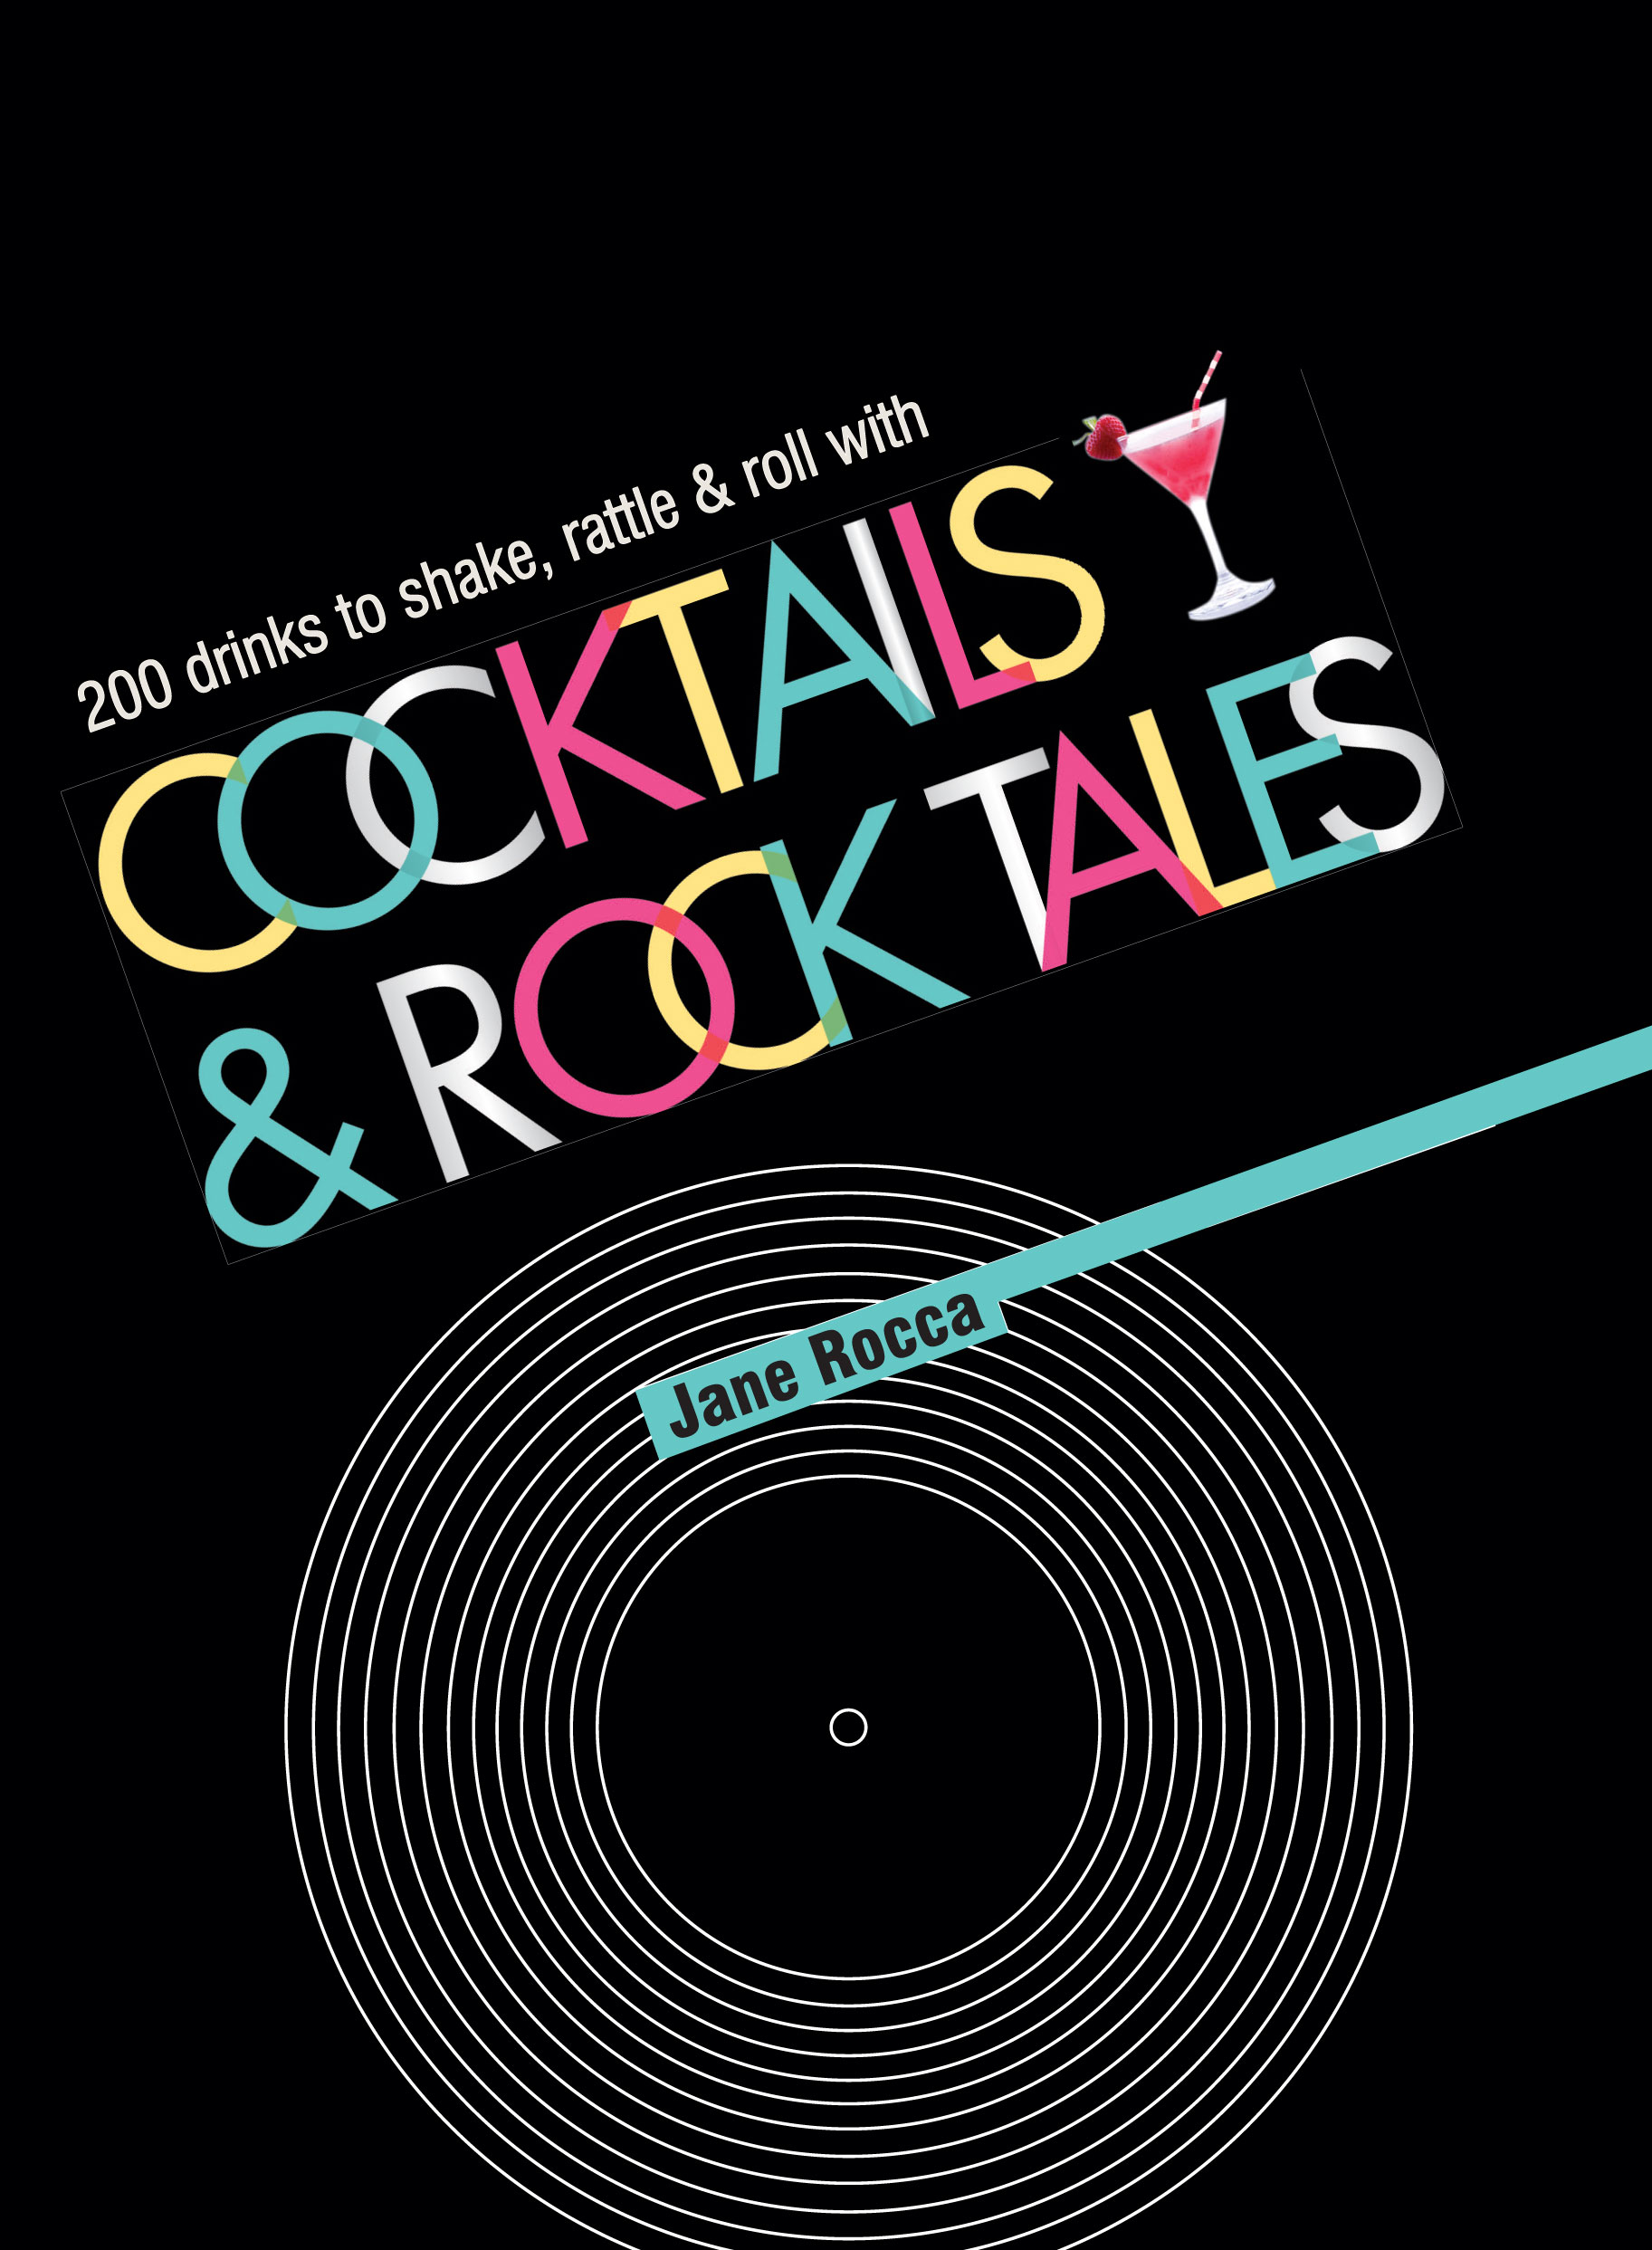 Cocktails and Rock Tales Global ed